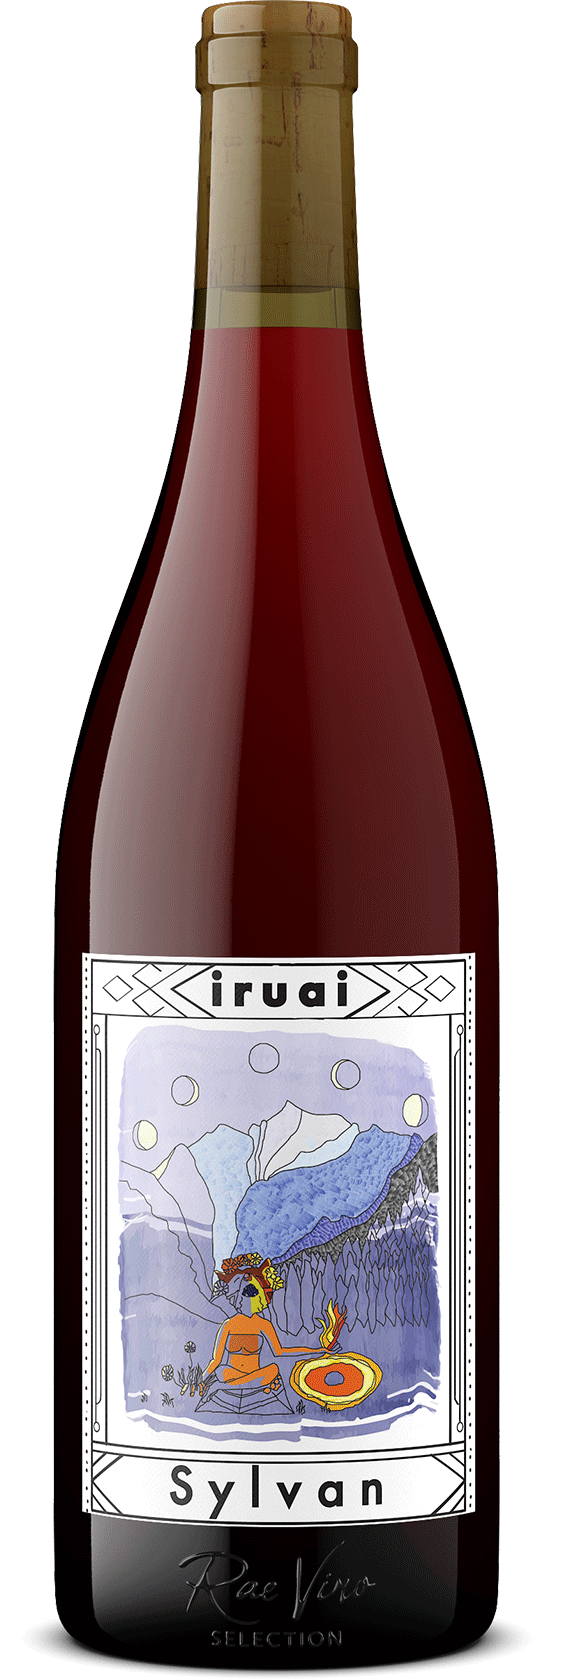 Iruai (by Methode Sauvage) : 'Sylvan' : Trousseau | 2019